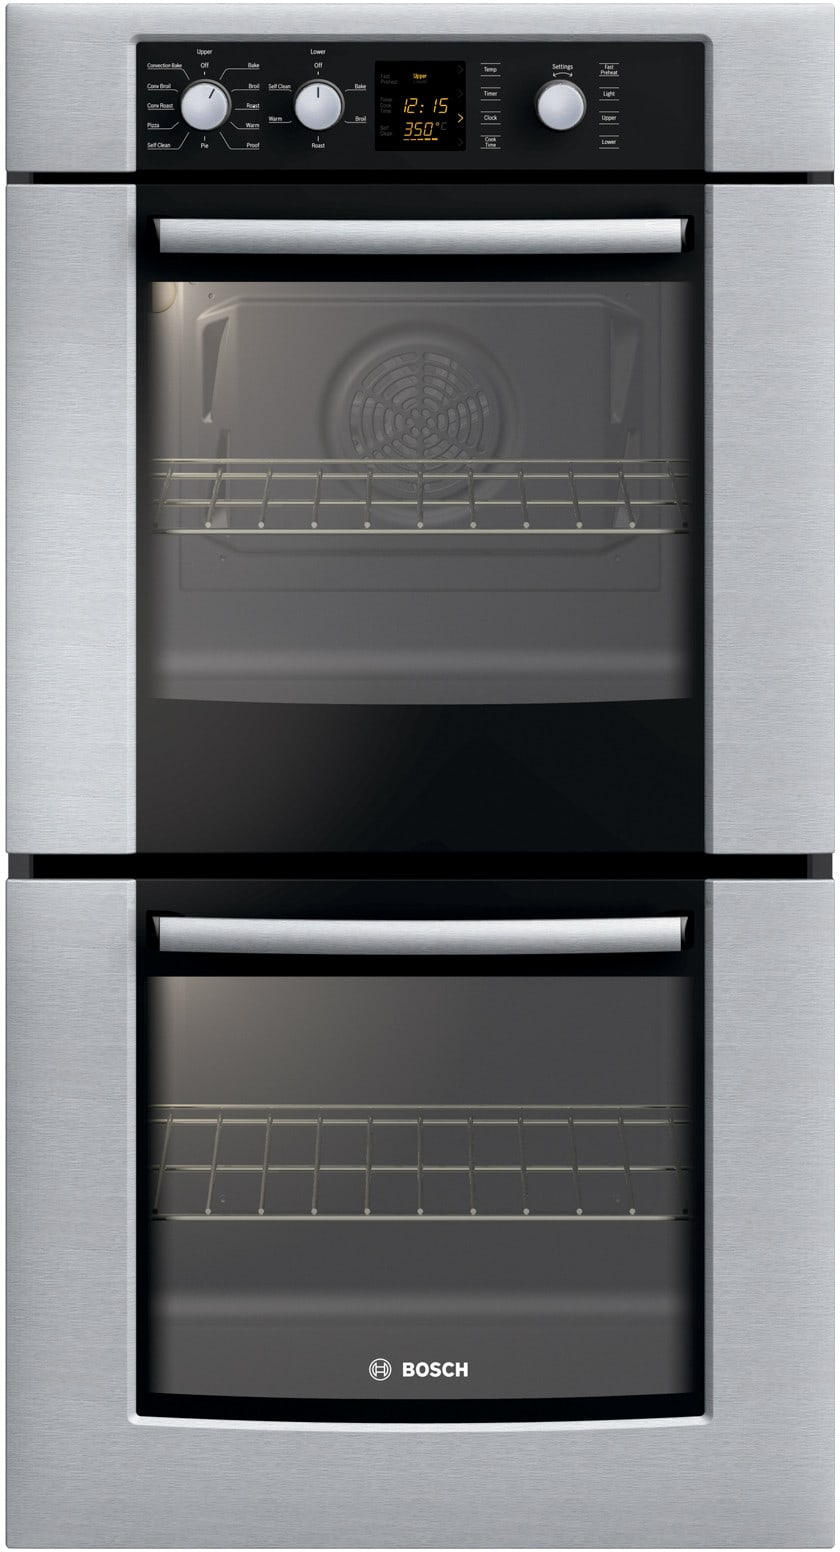 Bosch Hbn3550uc 27 Inch Double Electric Wall Oven With